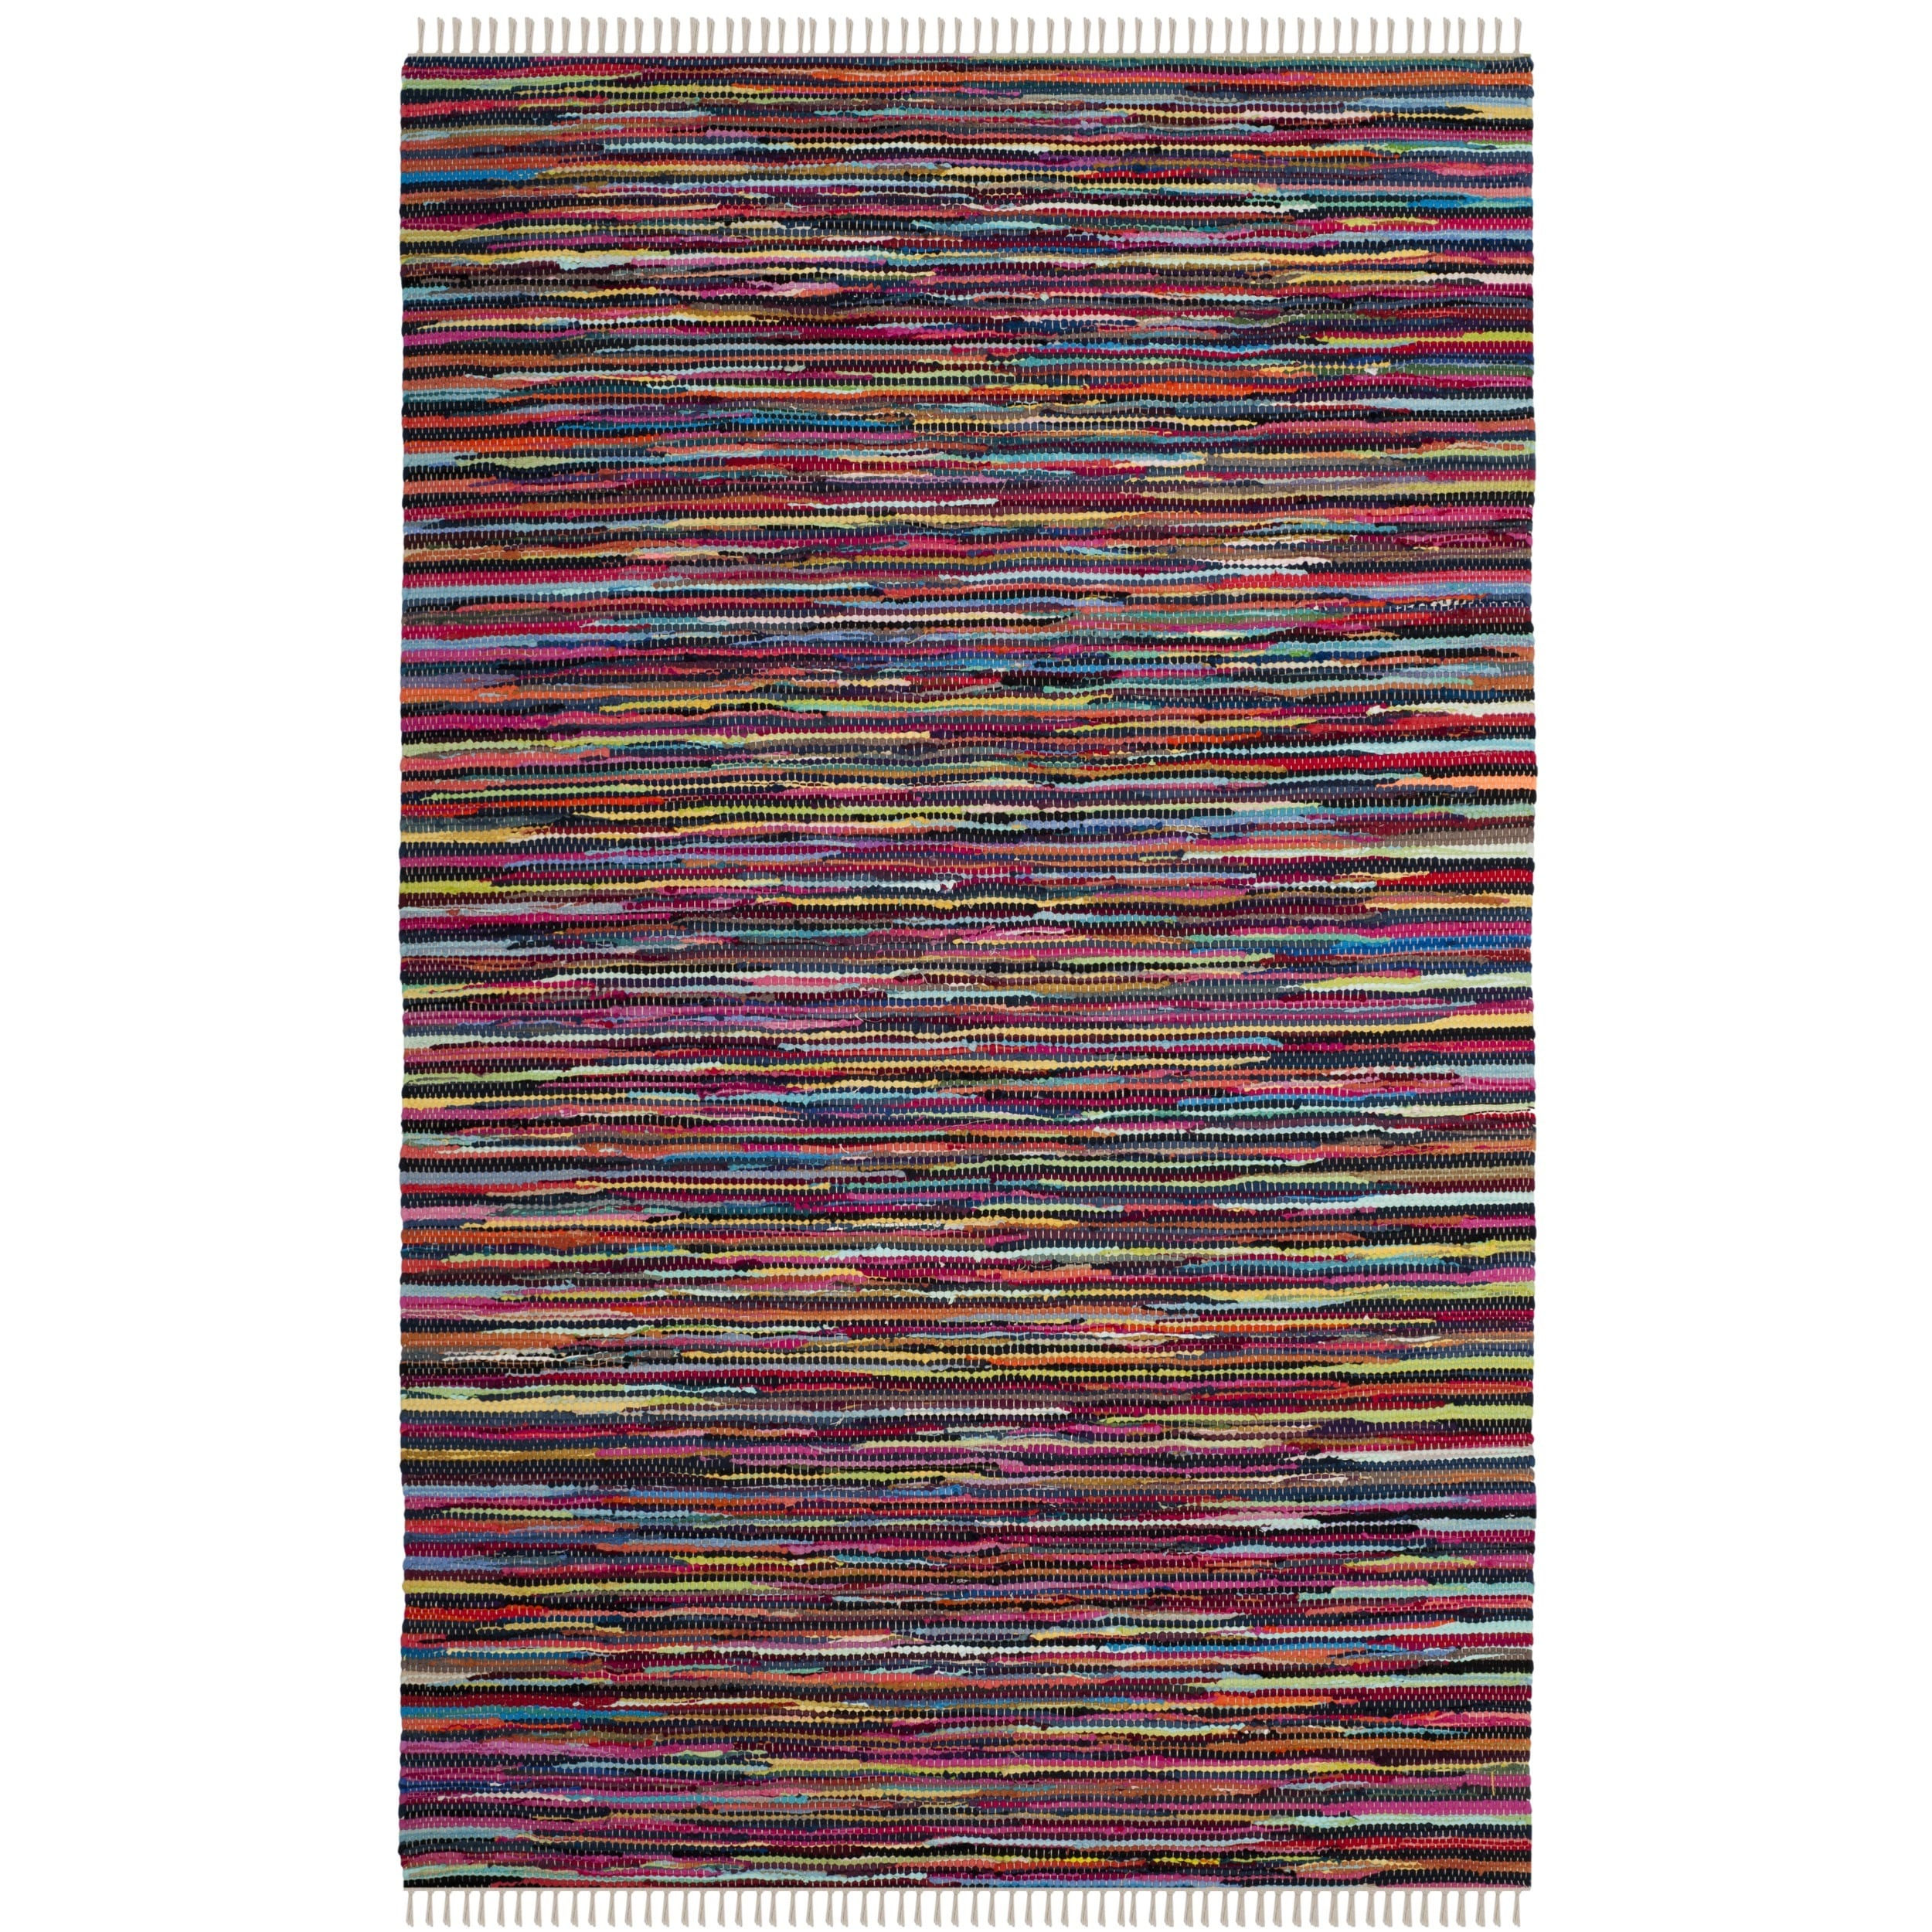 Safavieh Hand-Woven Rag Cotton Rug Multicolored Cotton Ru...